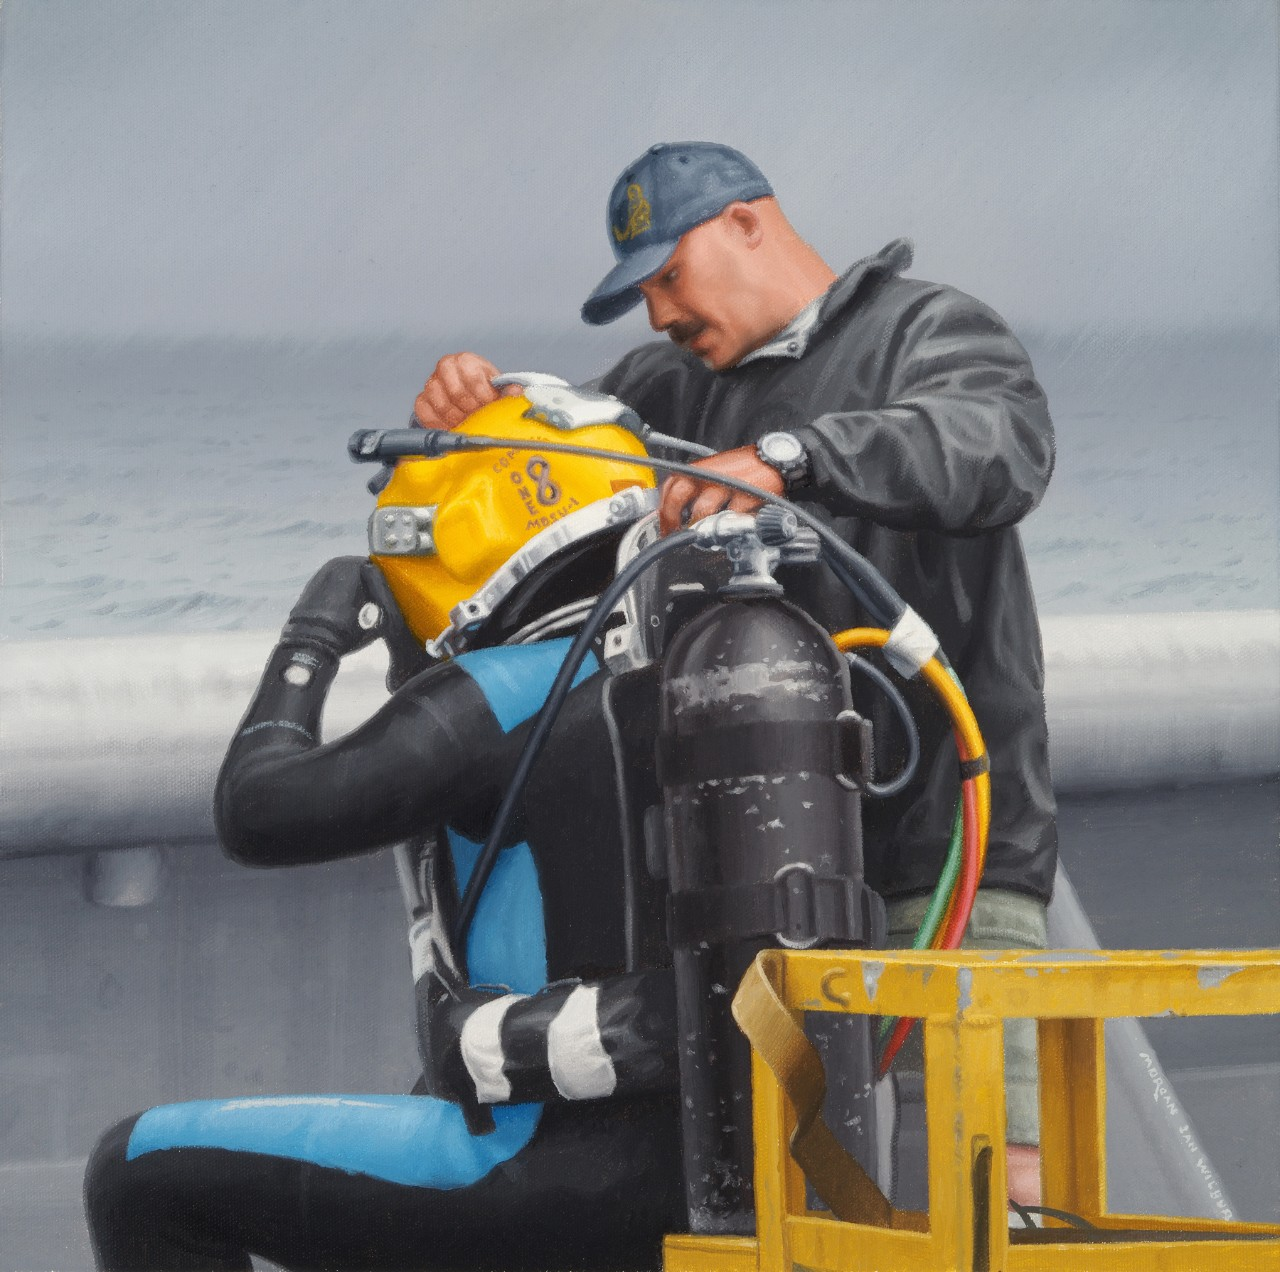 A man in a ball cap and a jacket is helping a diver with his gear